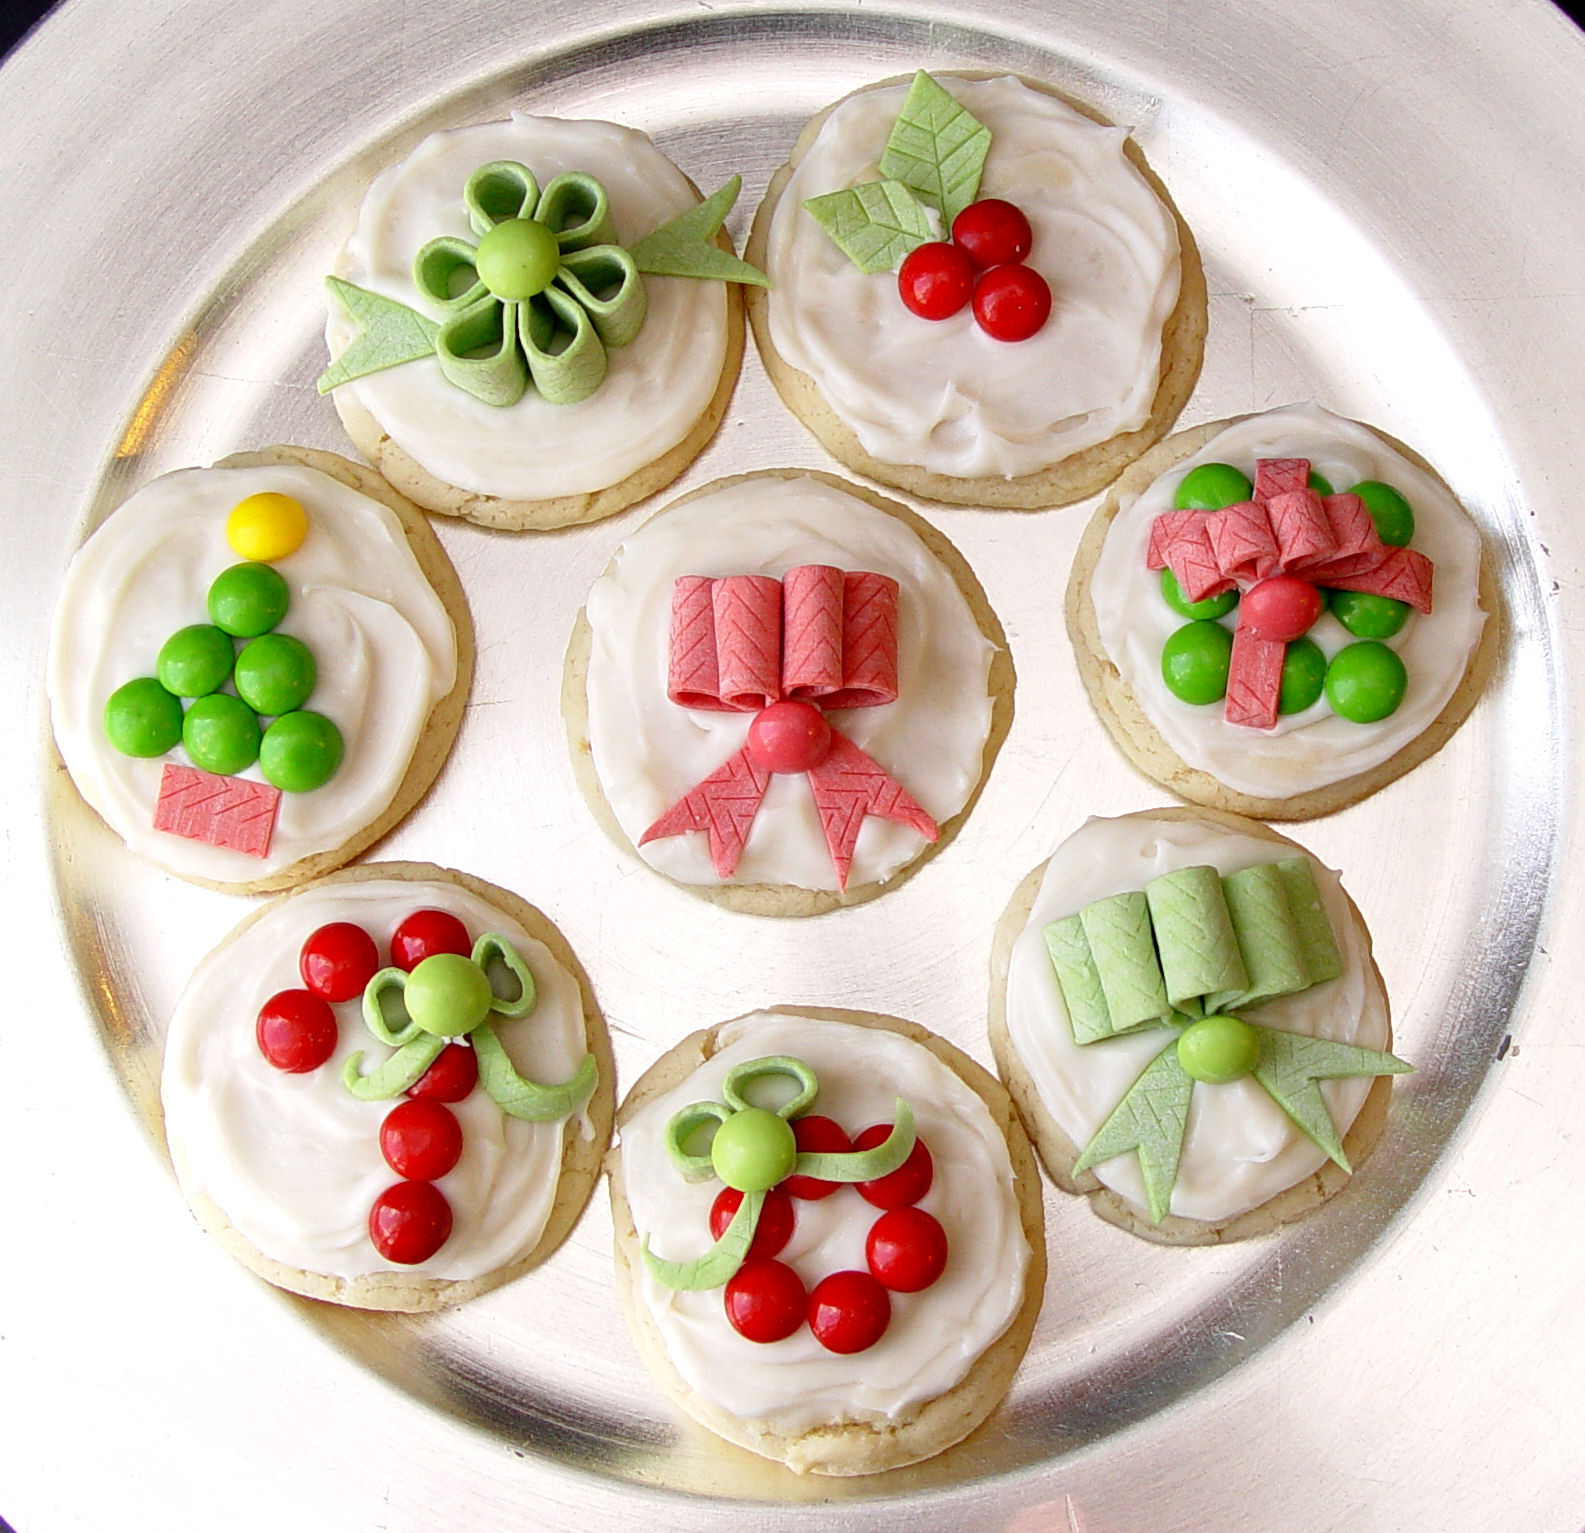 Decorated Christmas Sugar Cookies  Candy Decorated Christmas Sugar Cookies